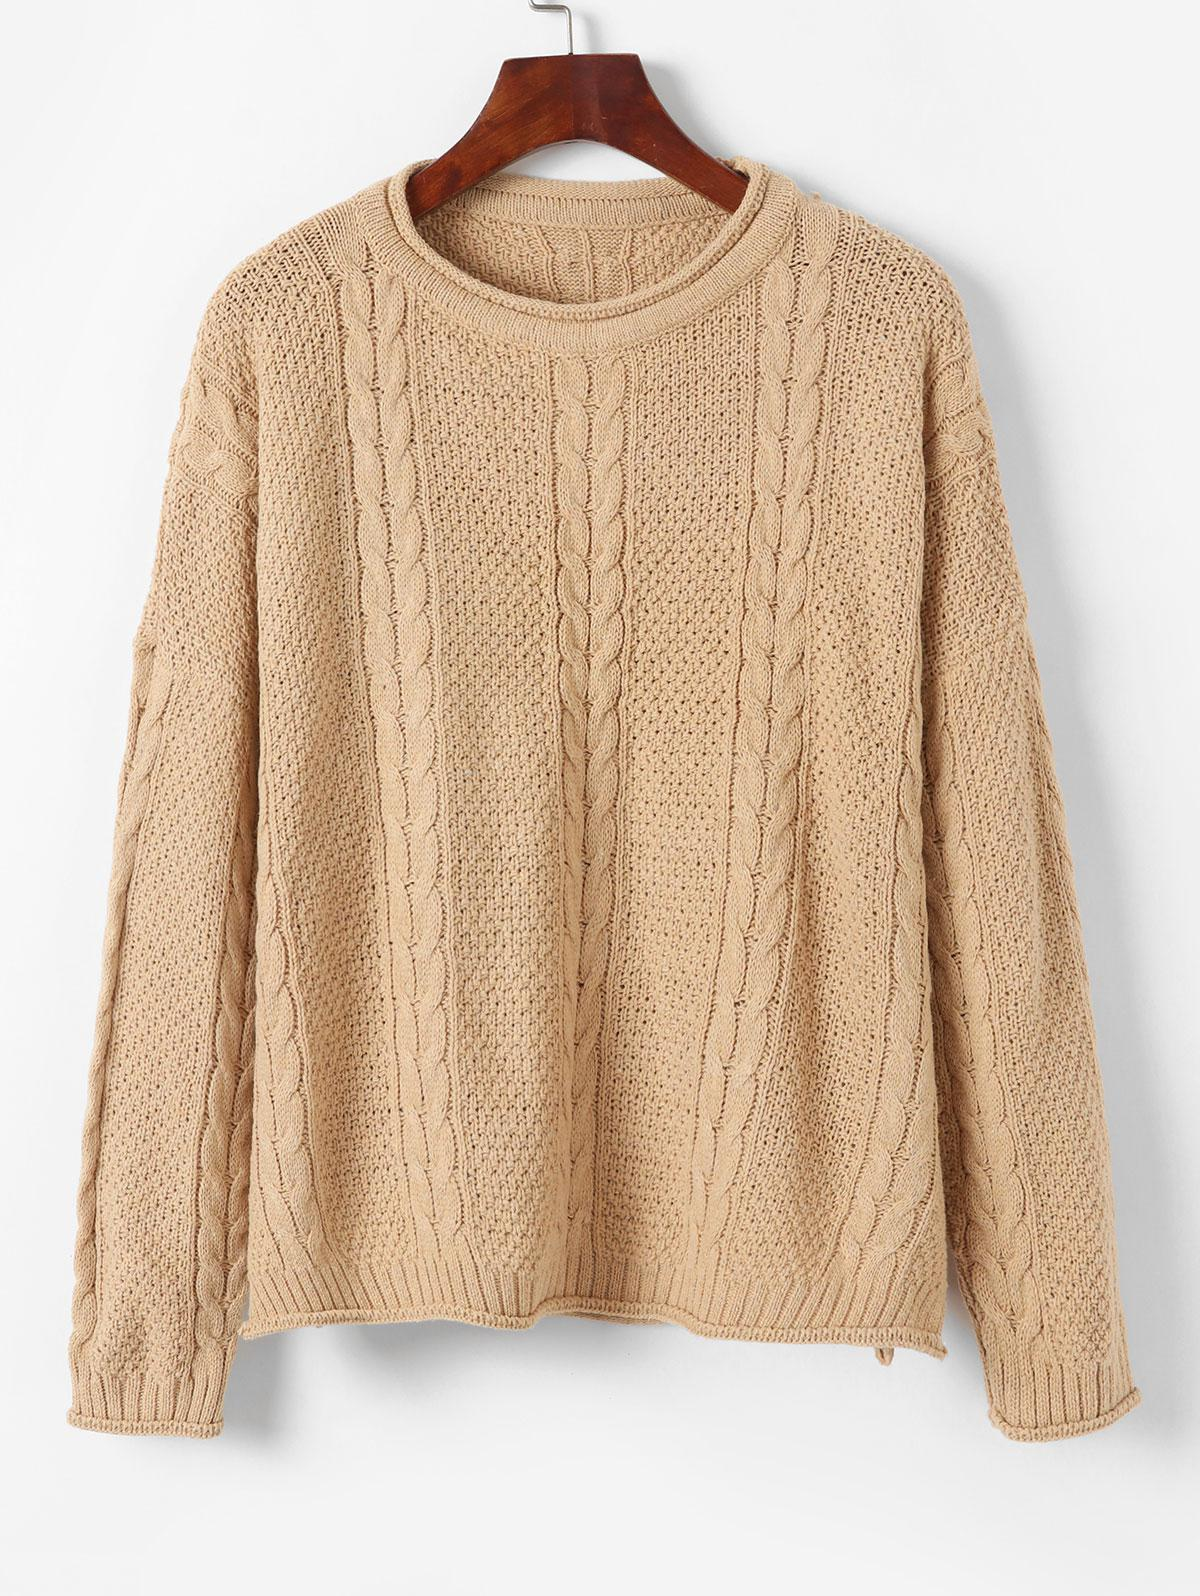 Pullover Drop Shoulder Cable Knit Sweater